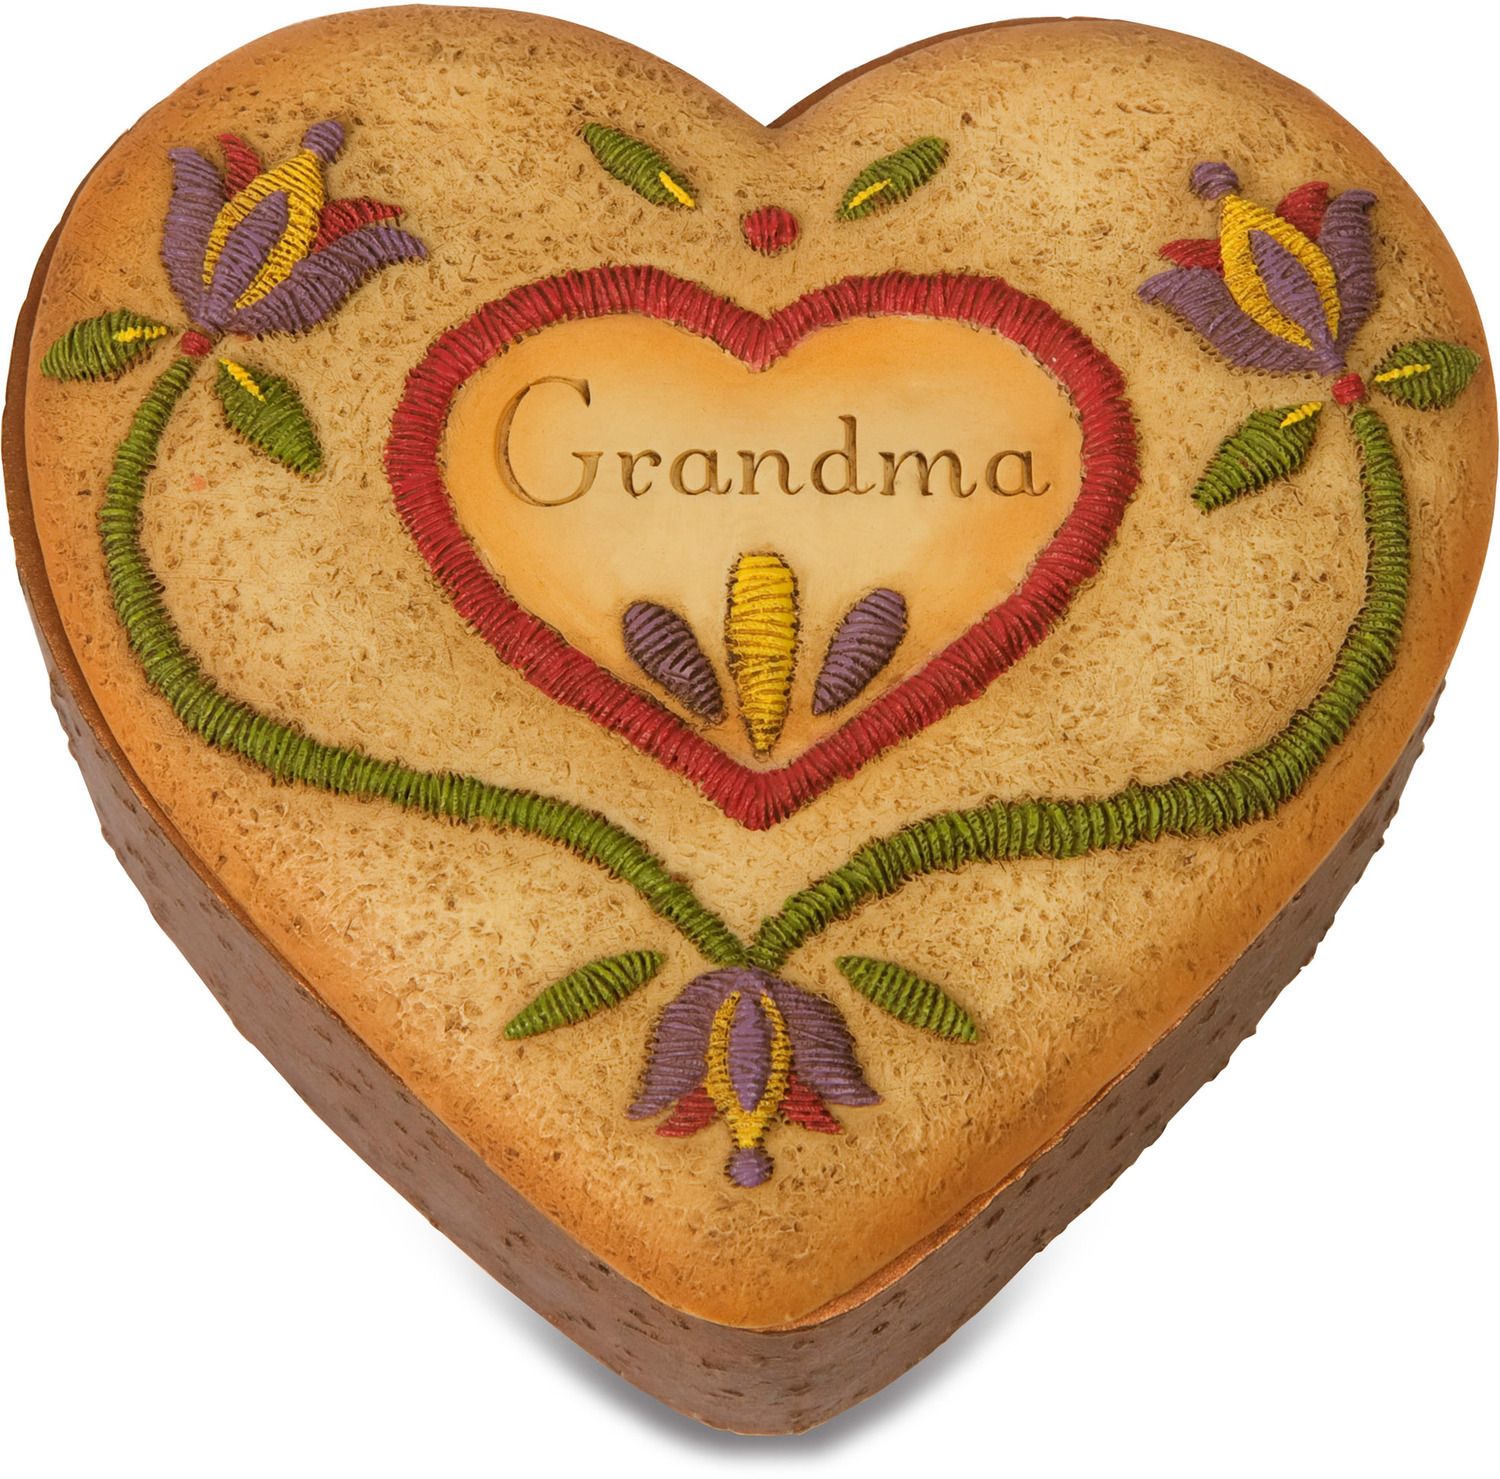 "Grandma by Country Soul - Grandma - 3.5"" x 3.5"" Heart Keepsake Box"